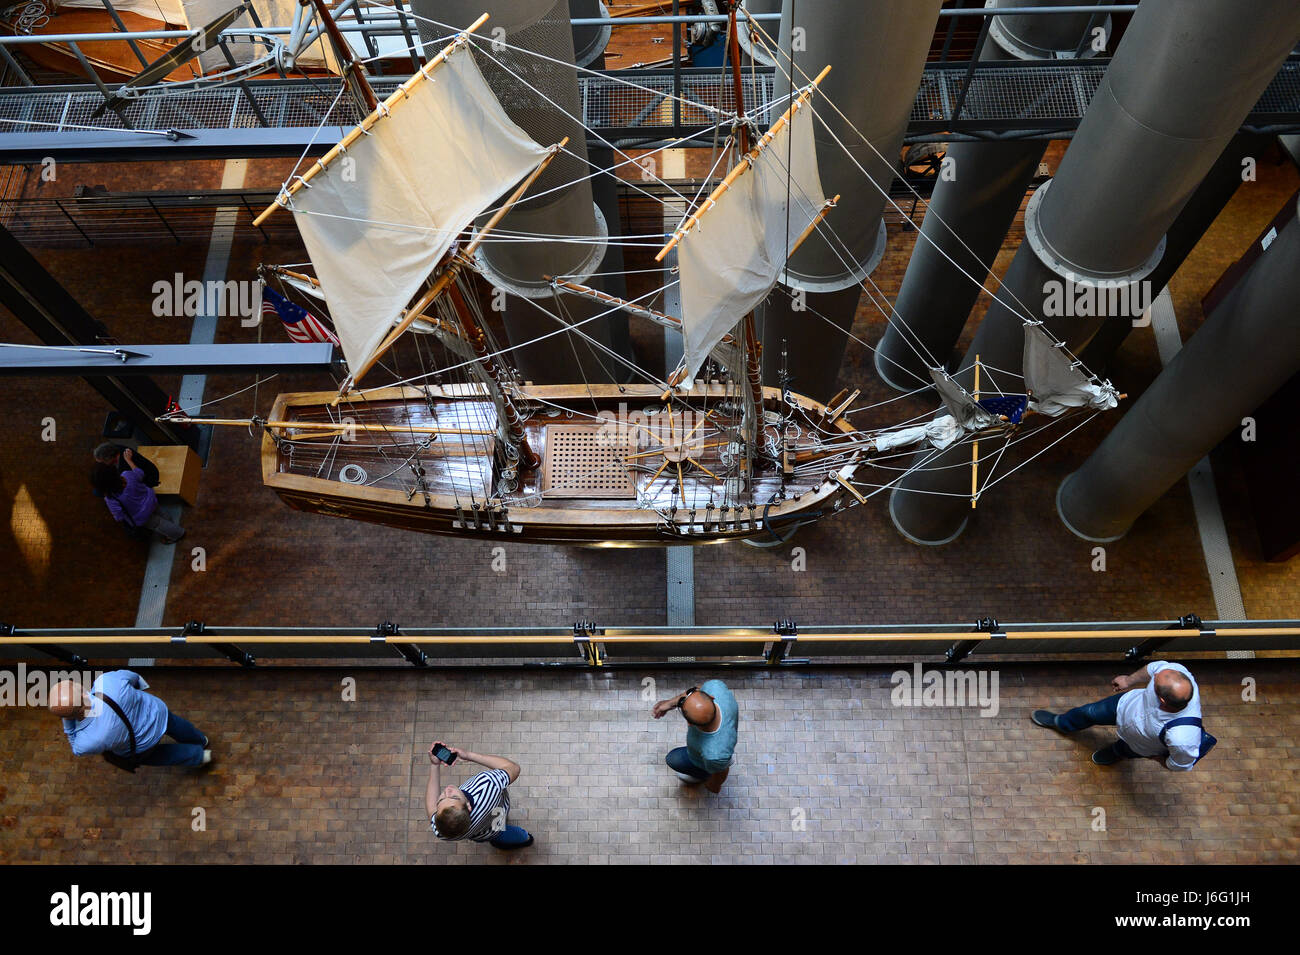 Berlin, Germany. 21st May, 2017. Visitors looking at a model of the american schooner Resoulution in the German - Stock Image